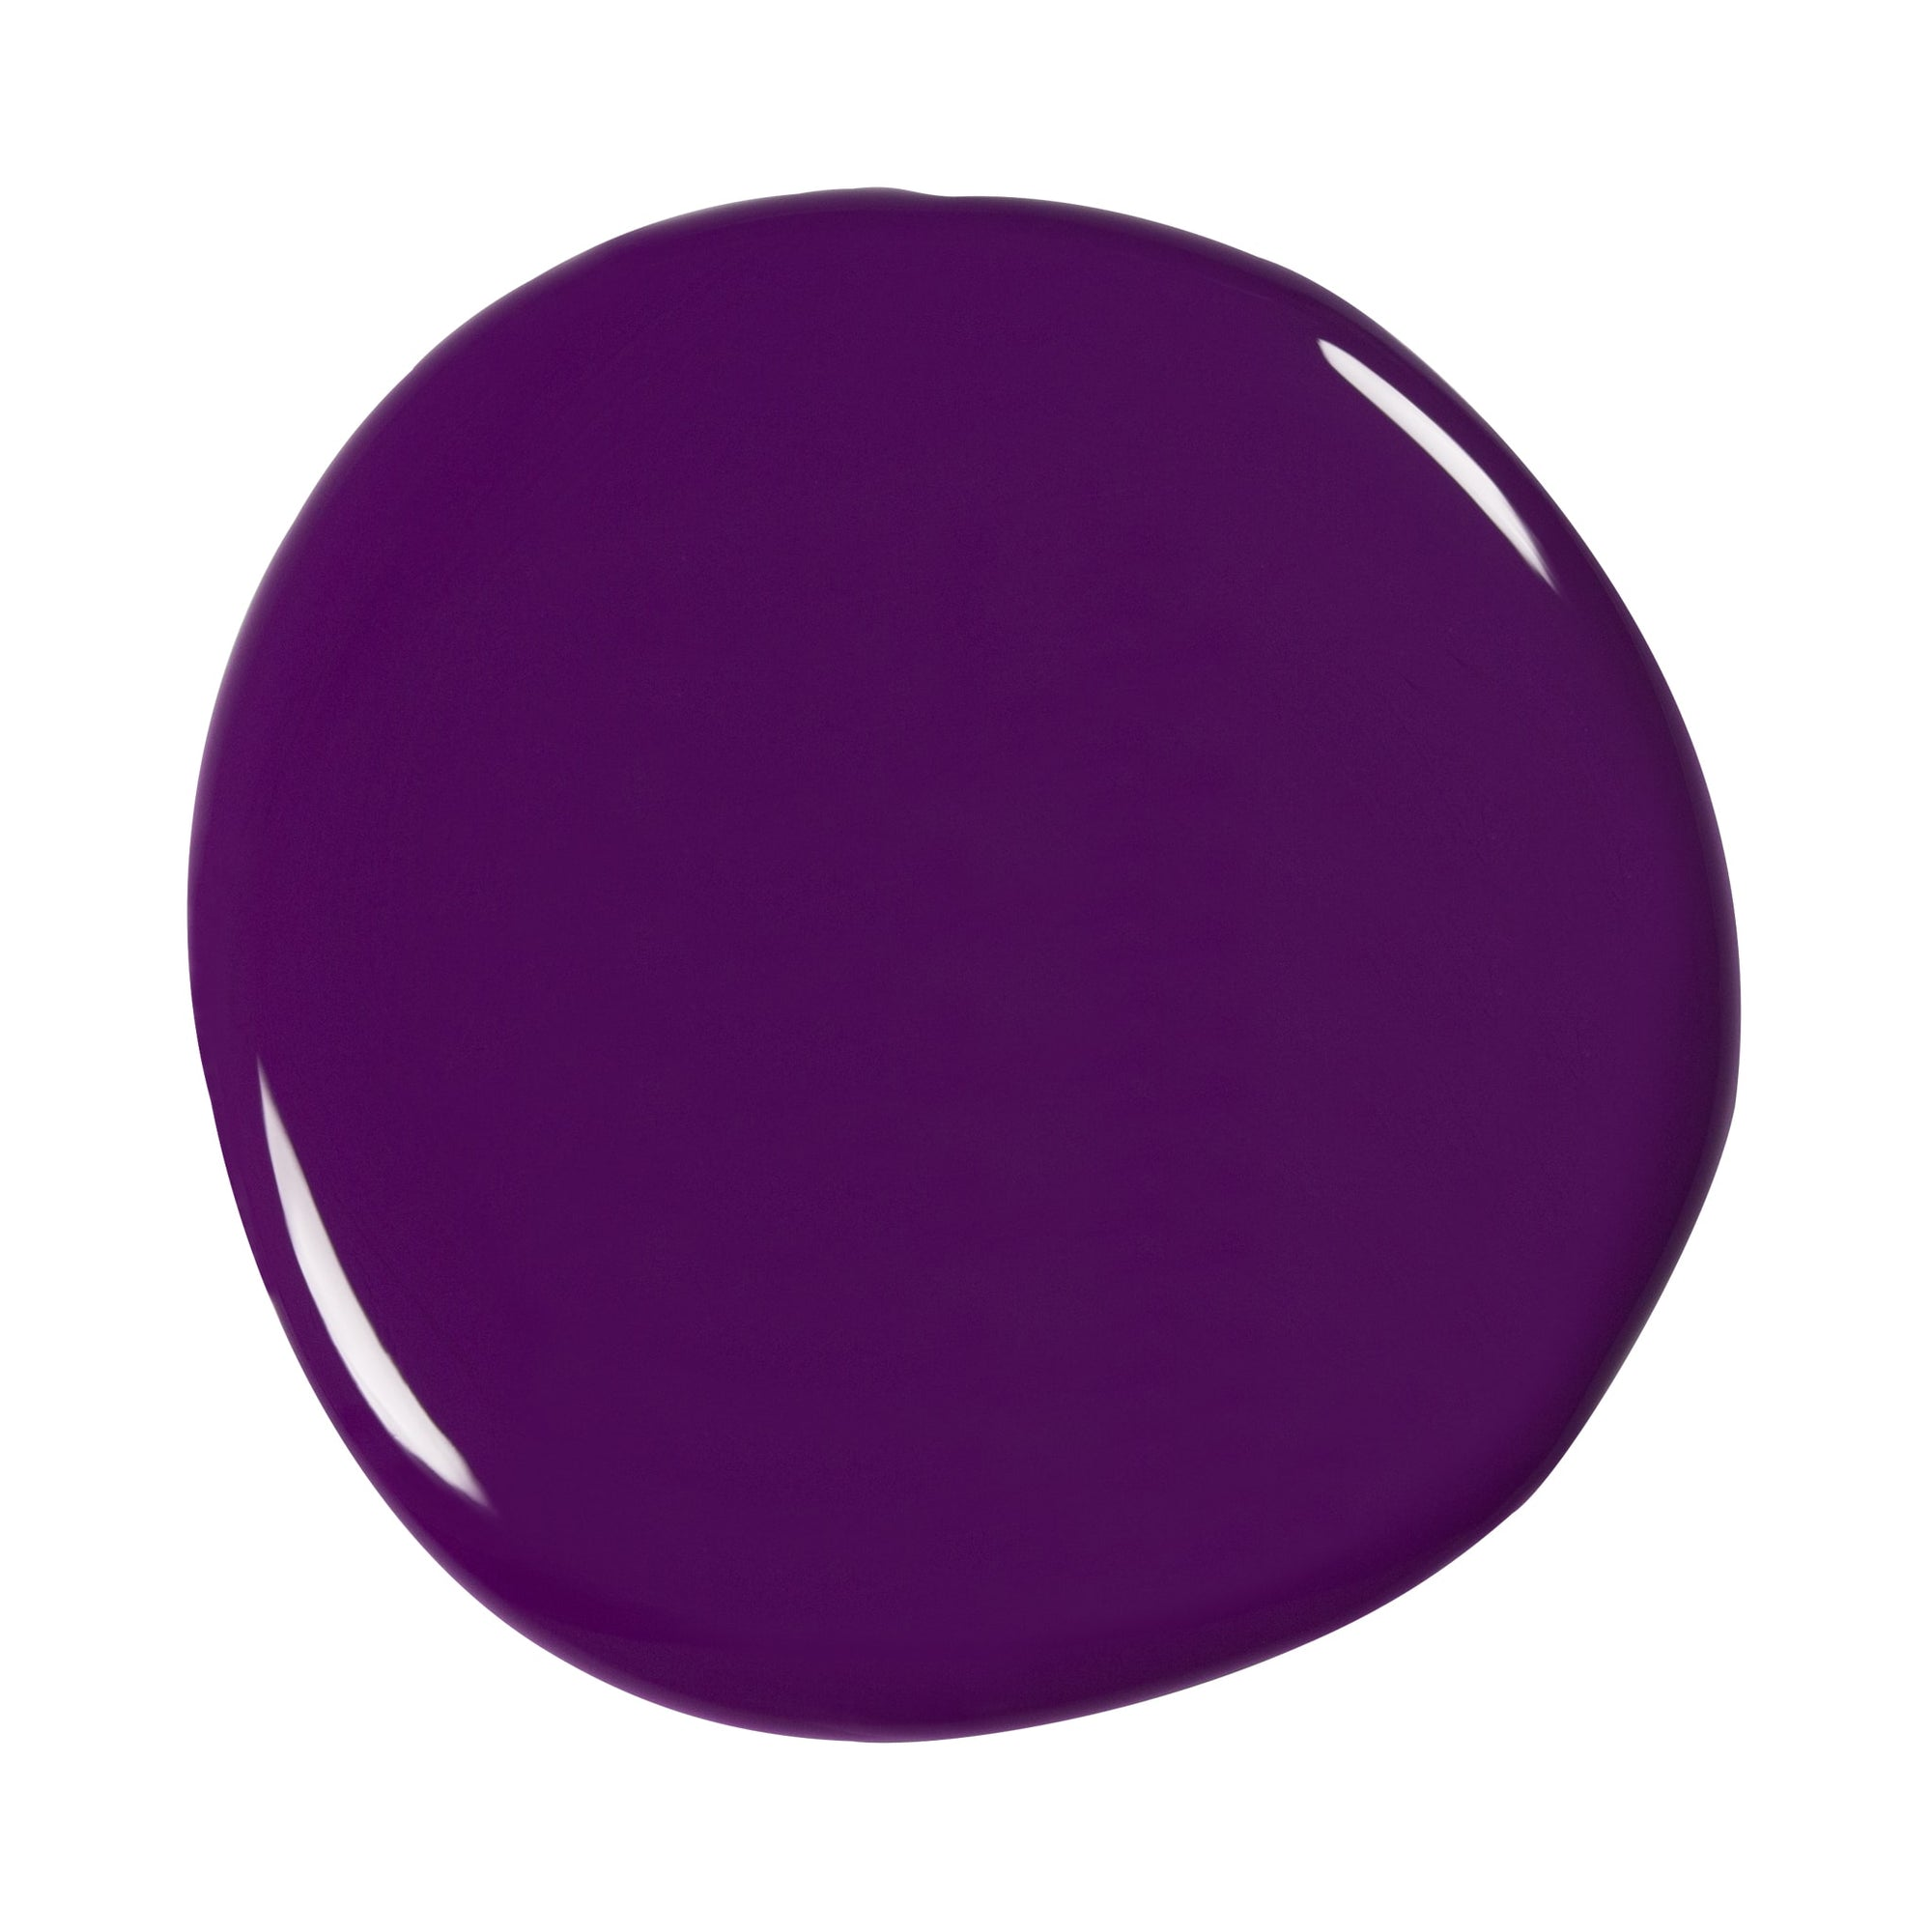 Farb Gel Classic plum purple